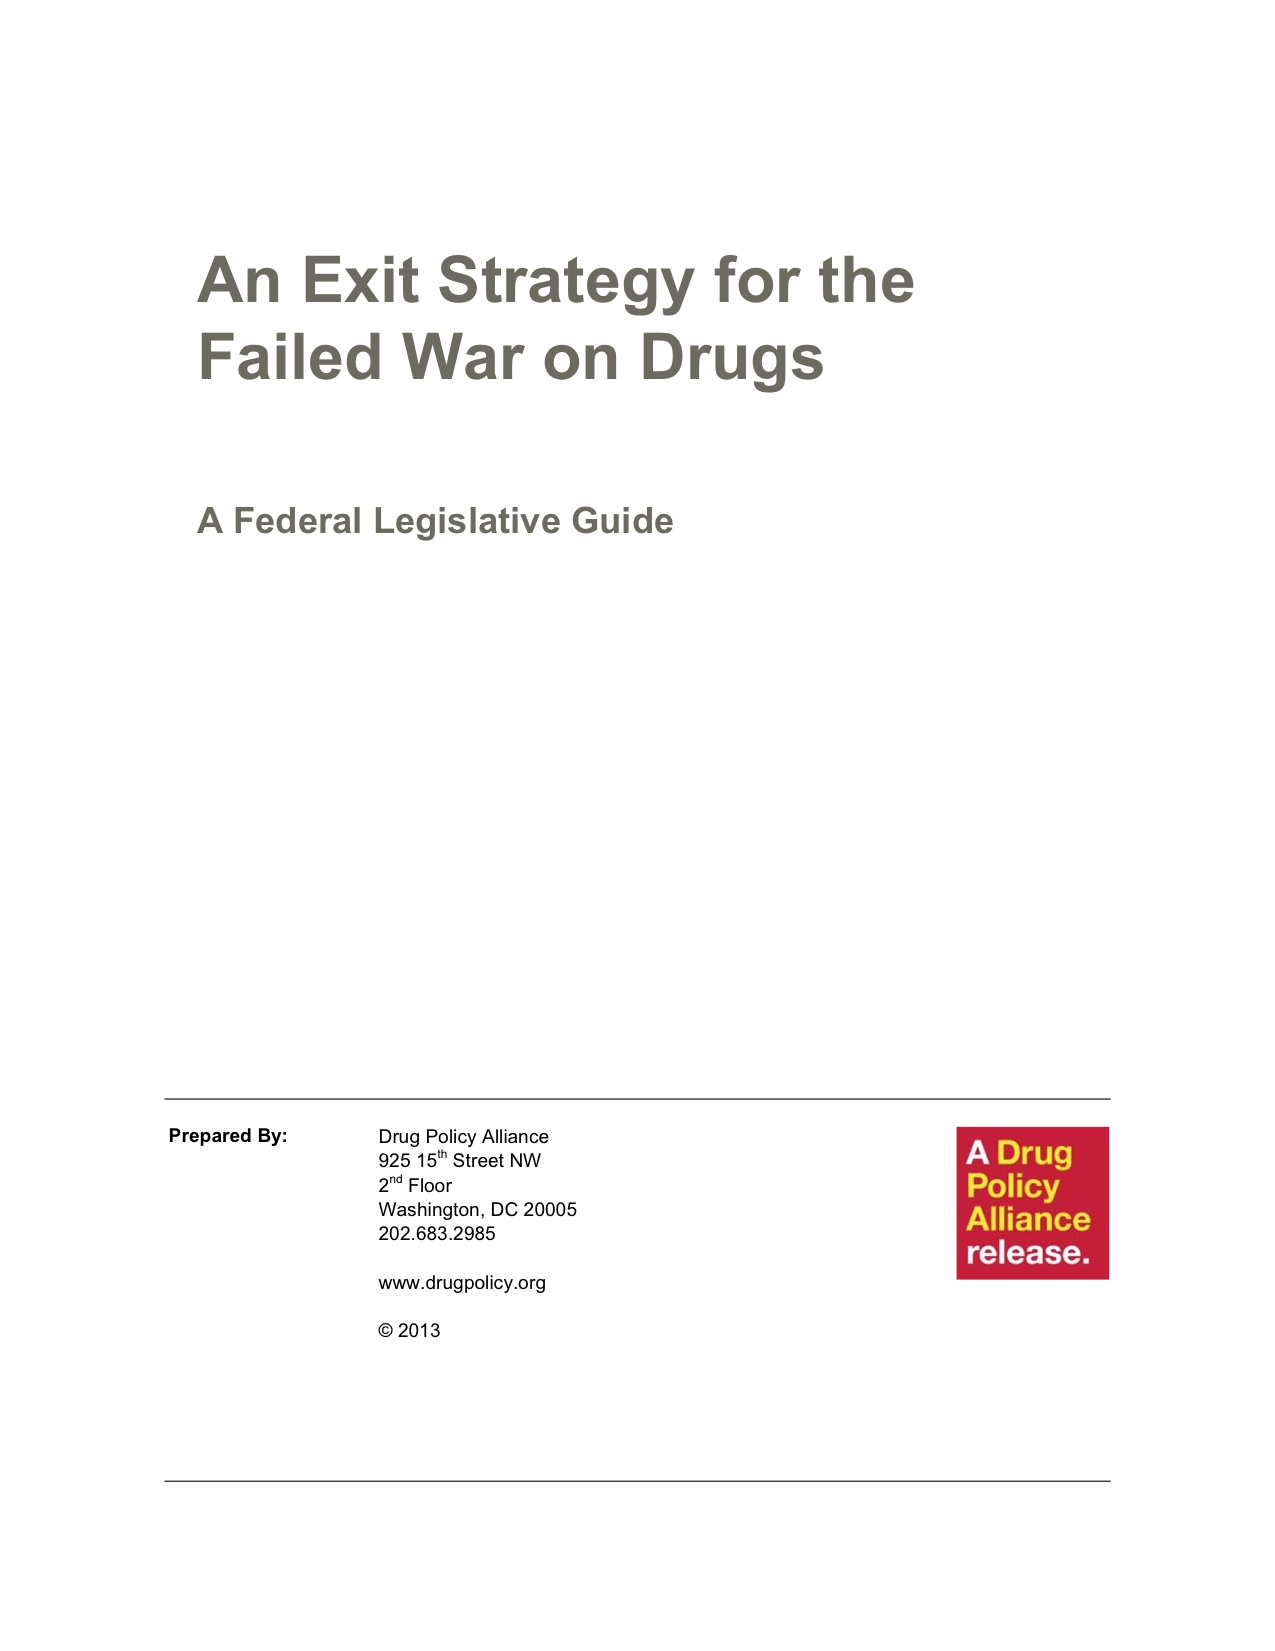 An exit strategy for the war on drugs.